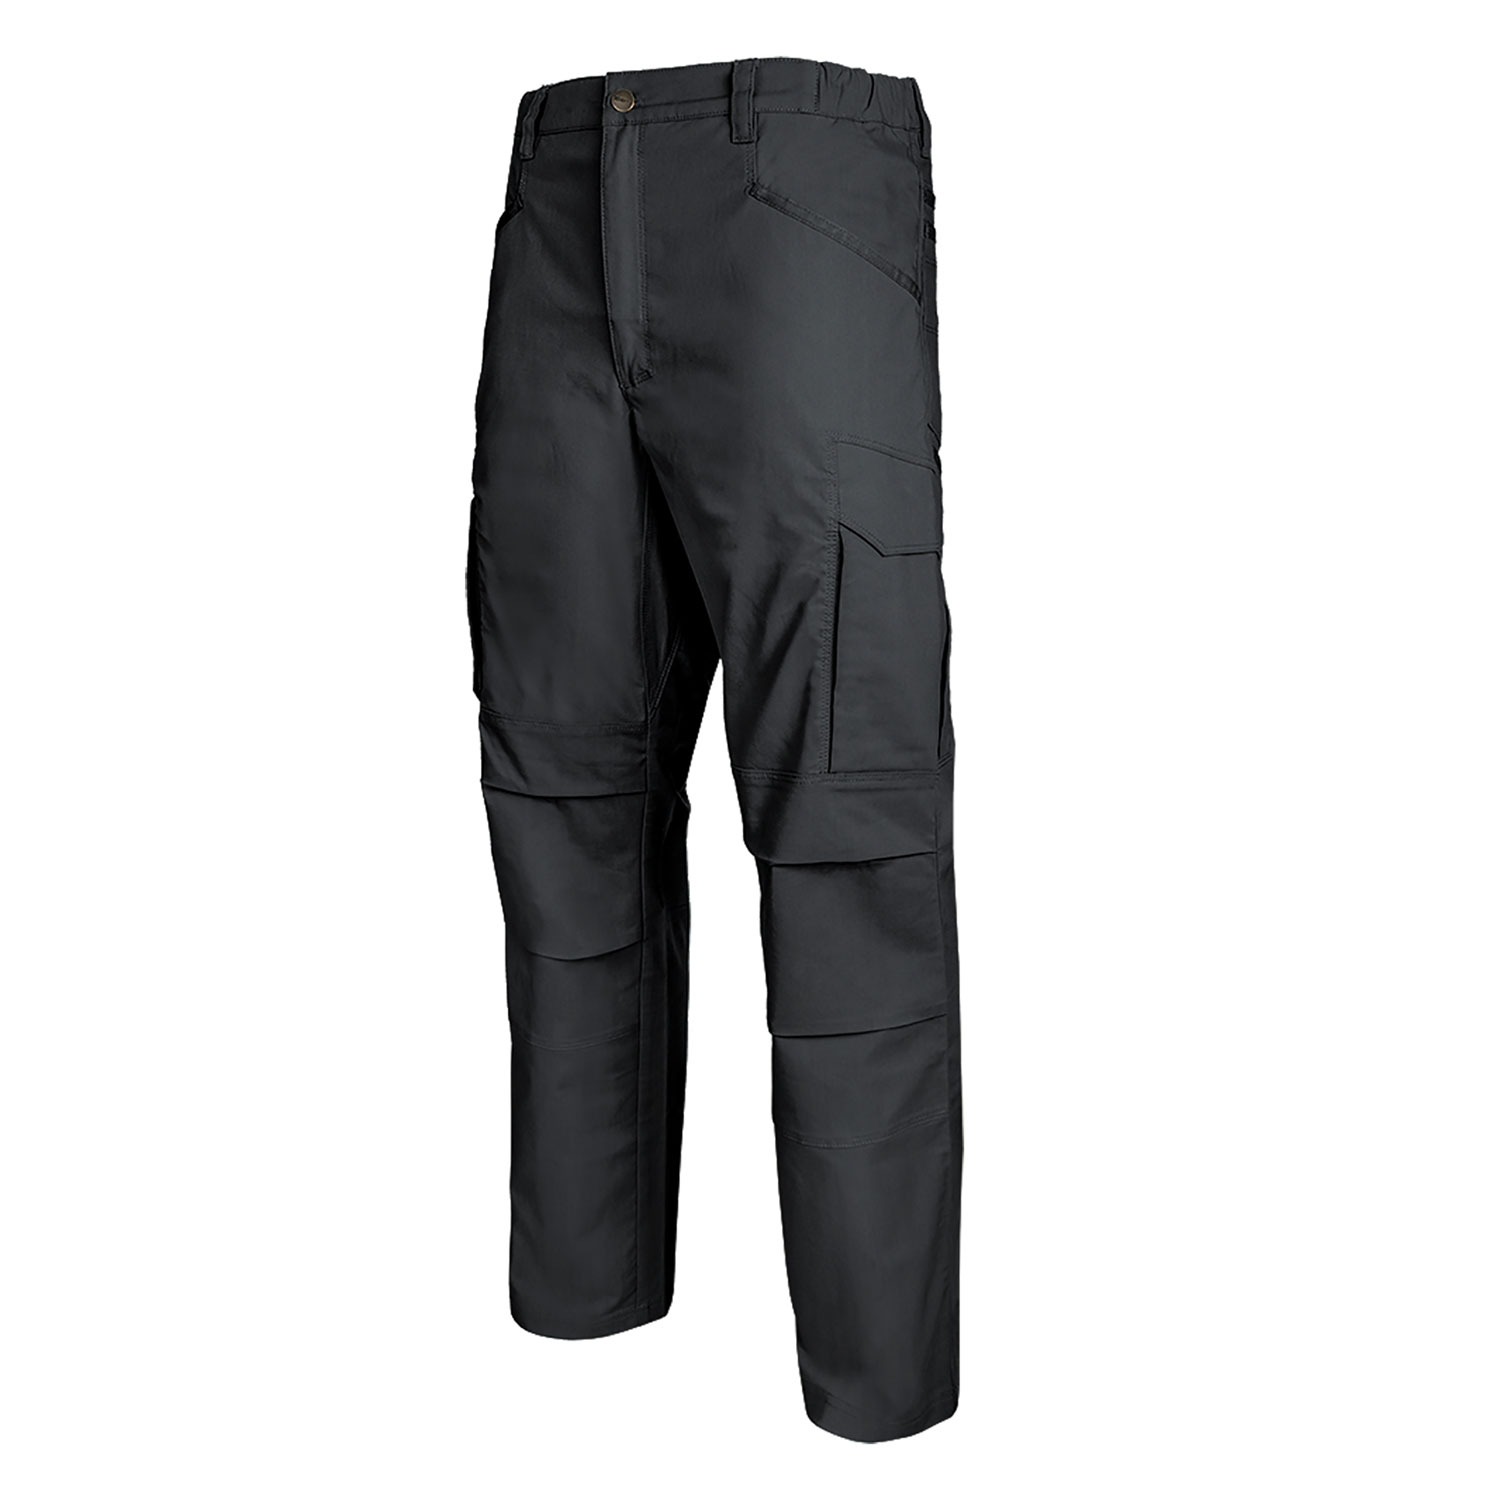 Vertx Fusion LT Stretch Tactical Pants